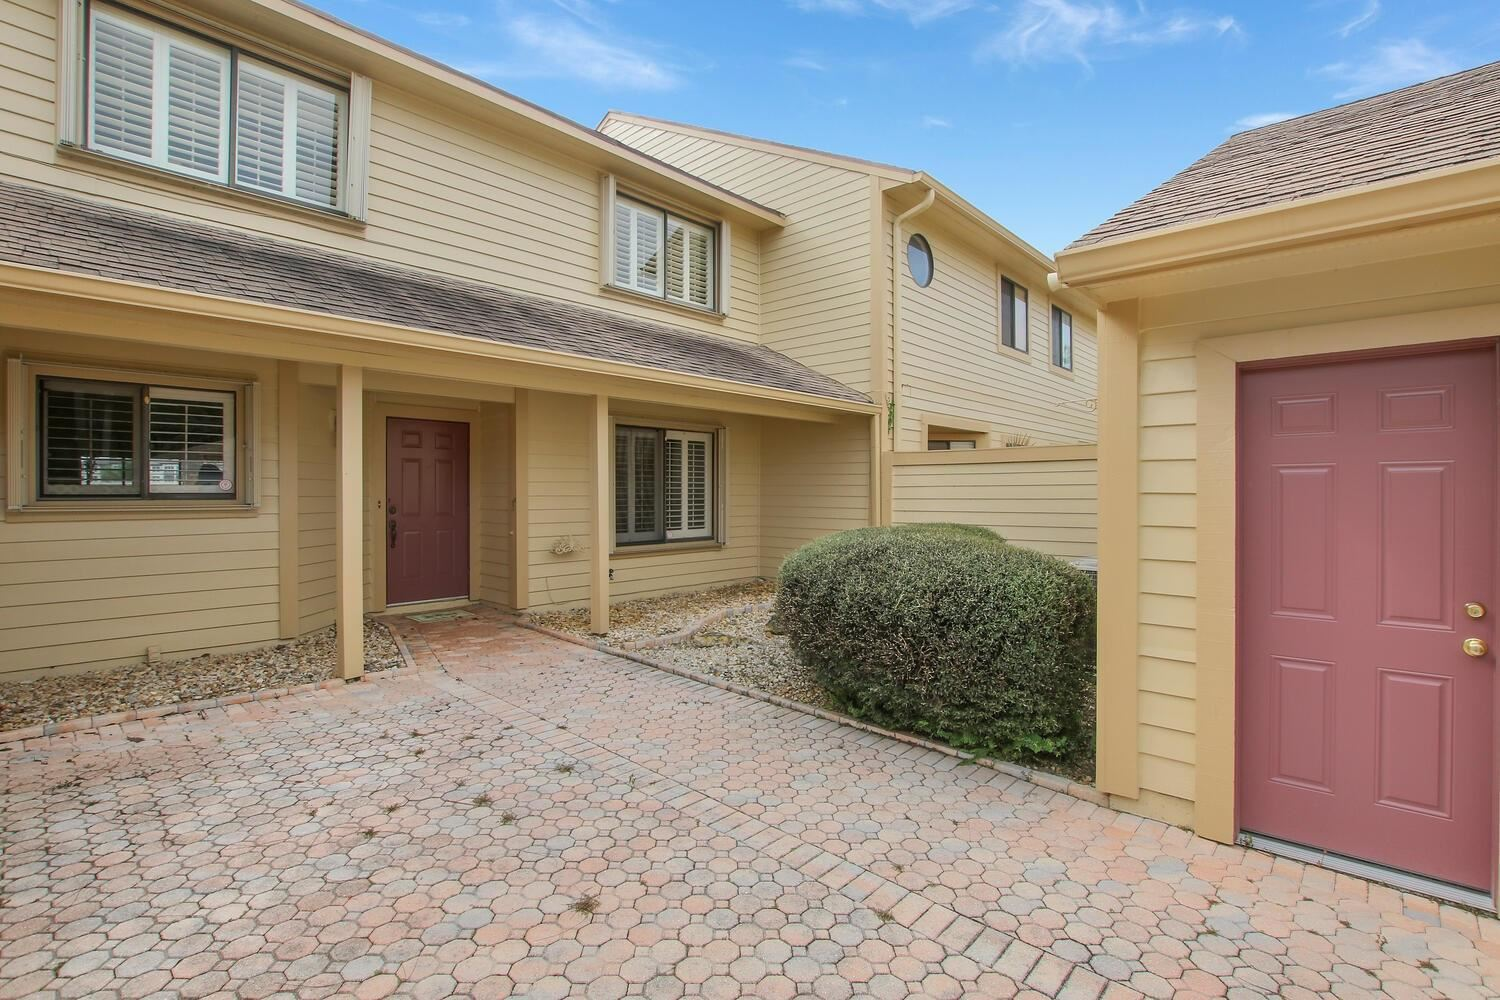 Photo of 6208 SE Georgetown Place, Hobe Sound, FL 33455 (MLS # RX-10669898)